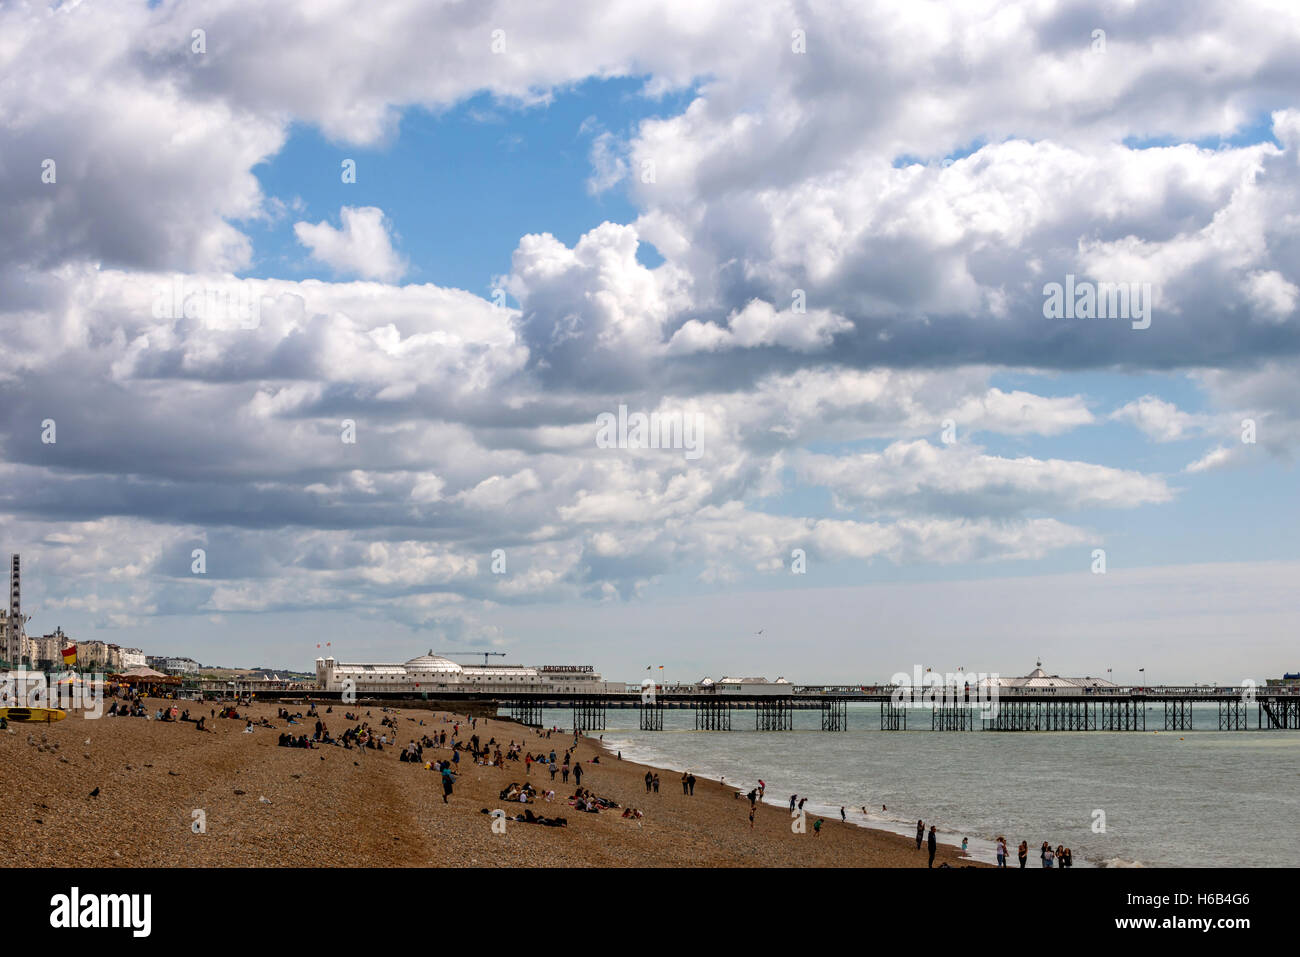 A quiet August day on Brighton beach - Stock Image